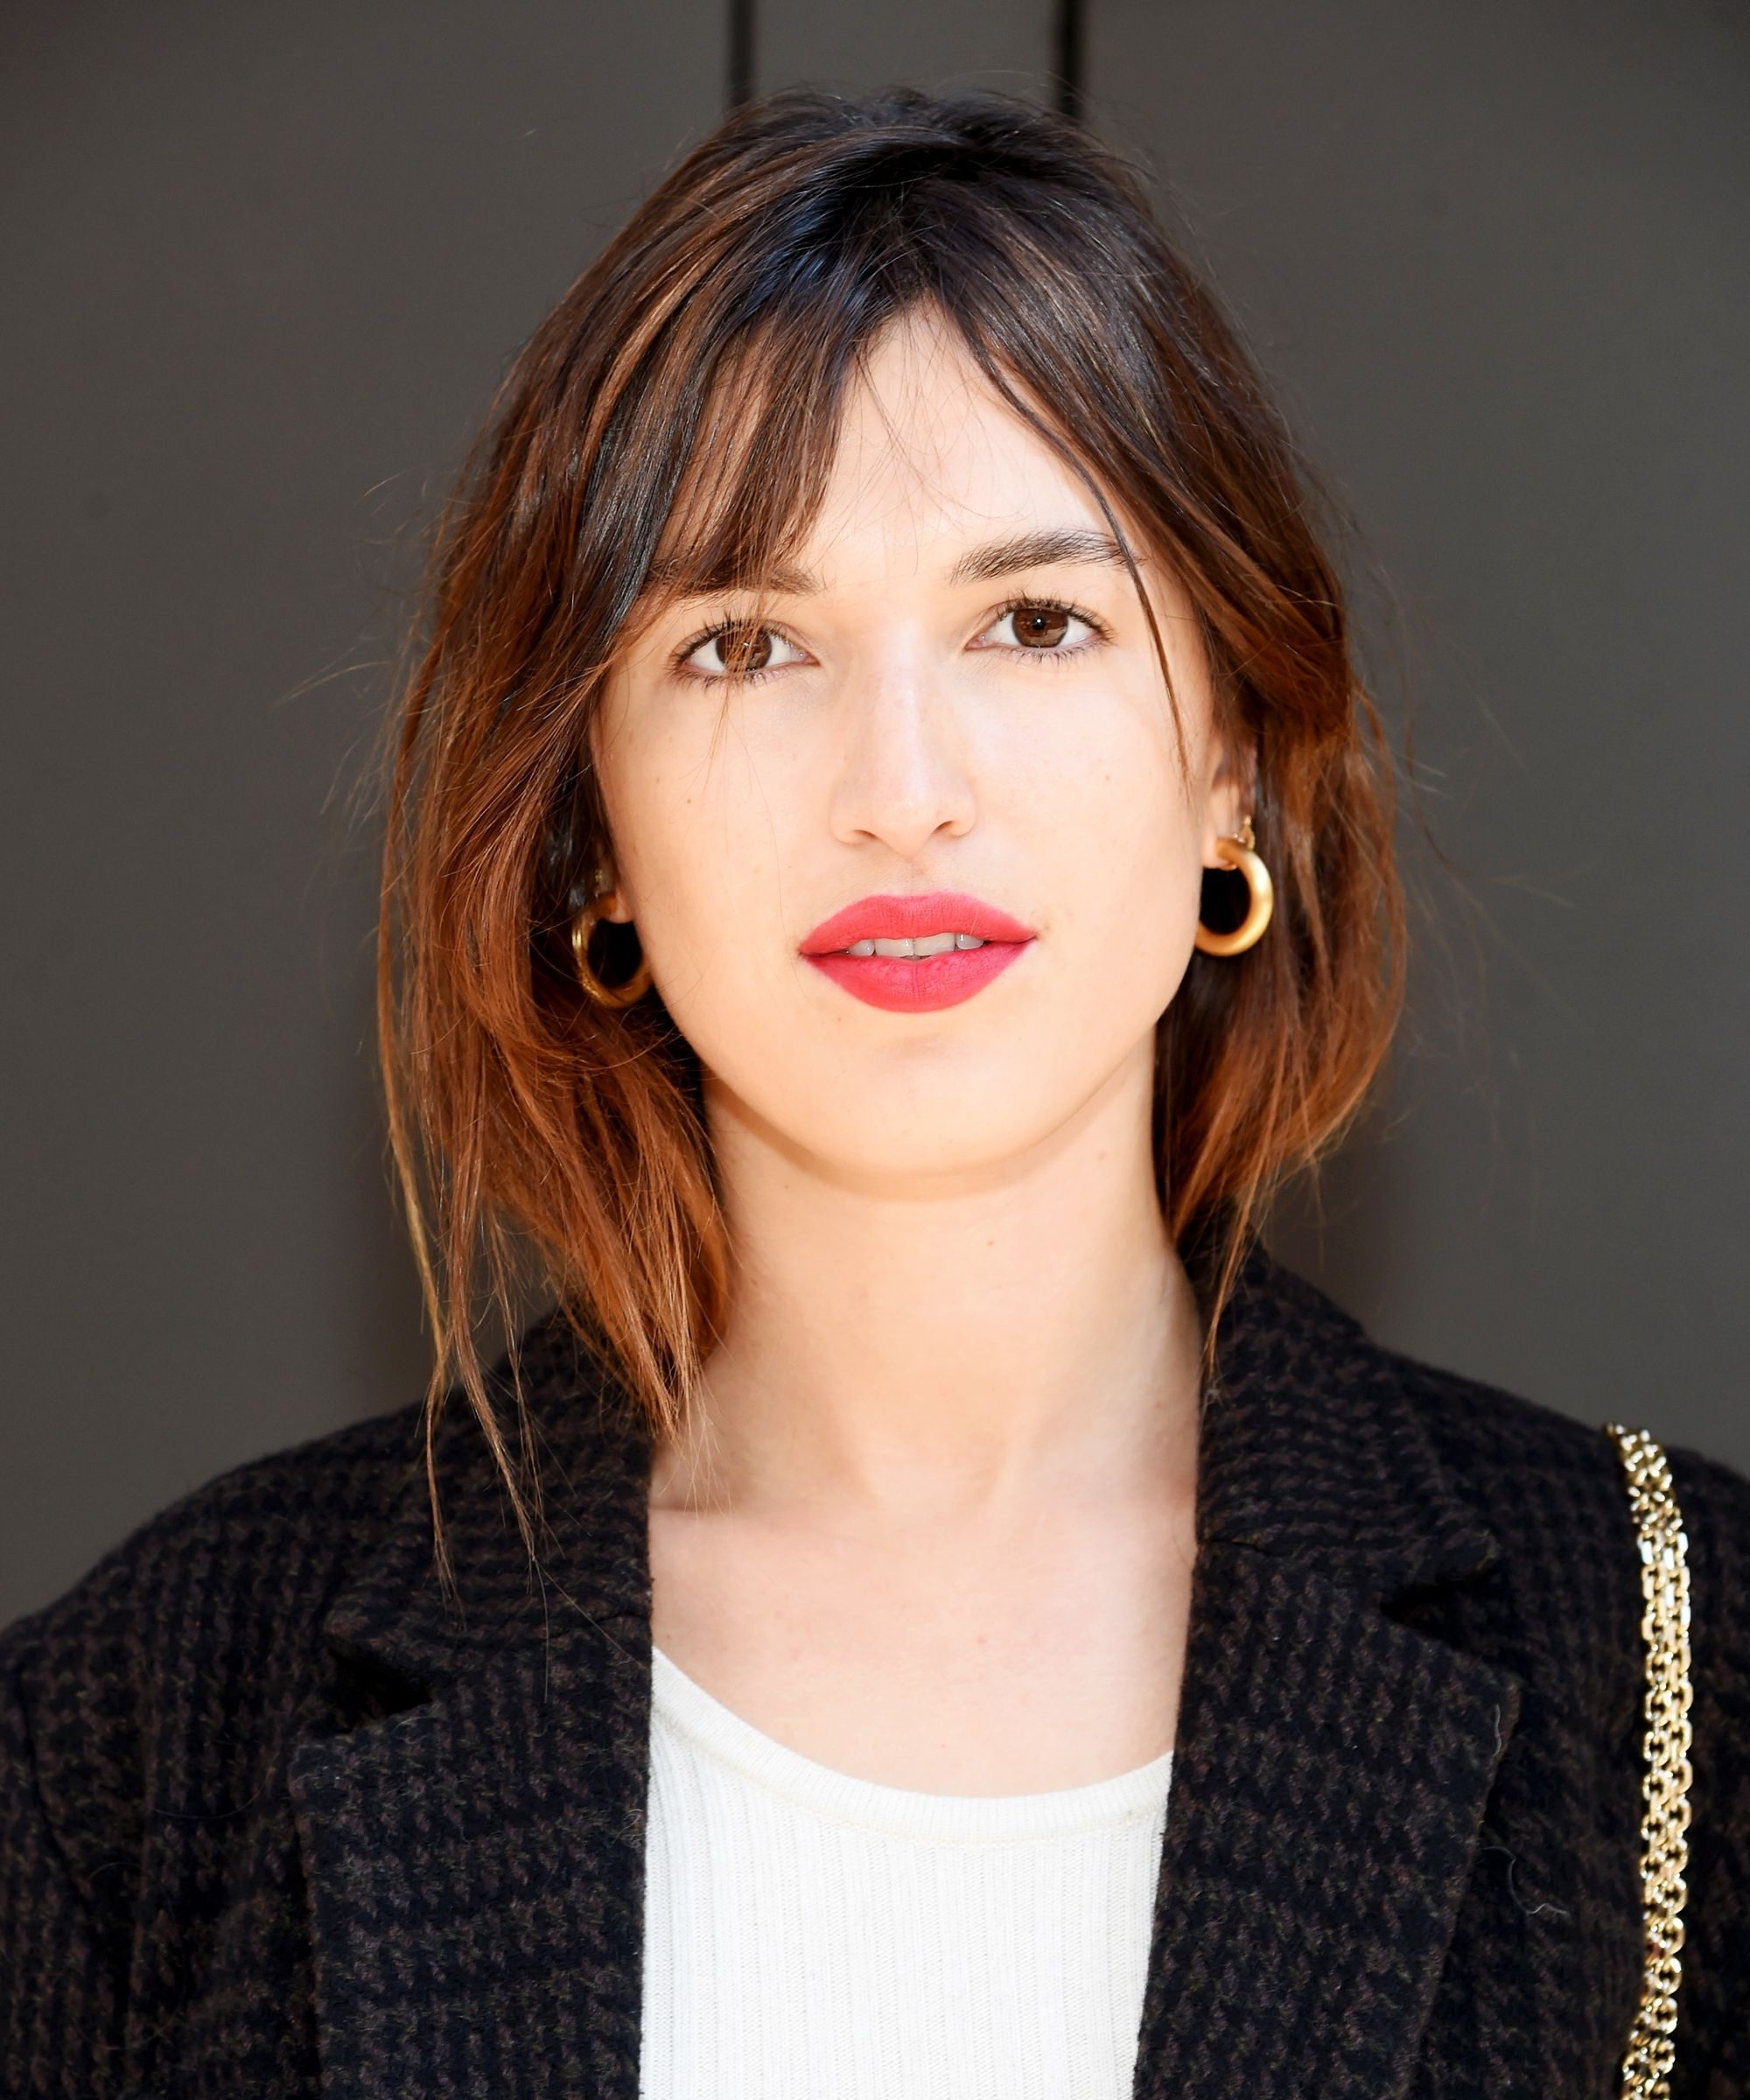 2018 Popular International Hair Trends Haircuts Photos Within Current Weaved Polished Pony Hairstyles With Blunt Bangs (View 2 of 20)